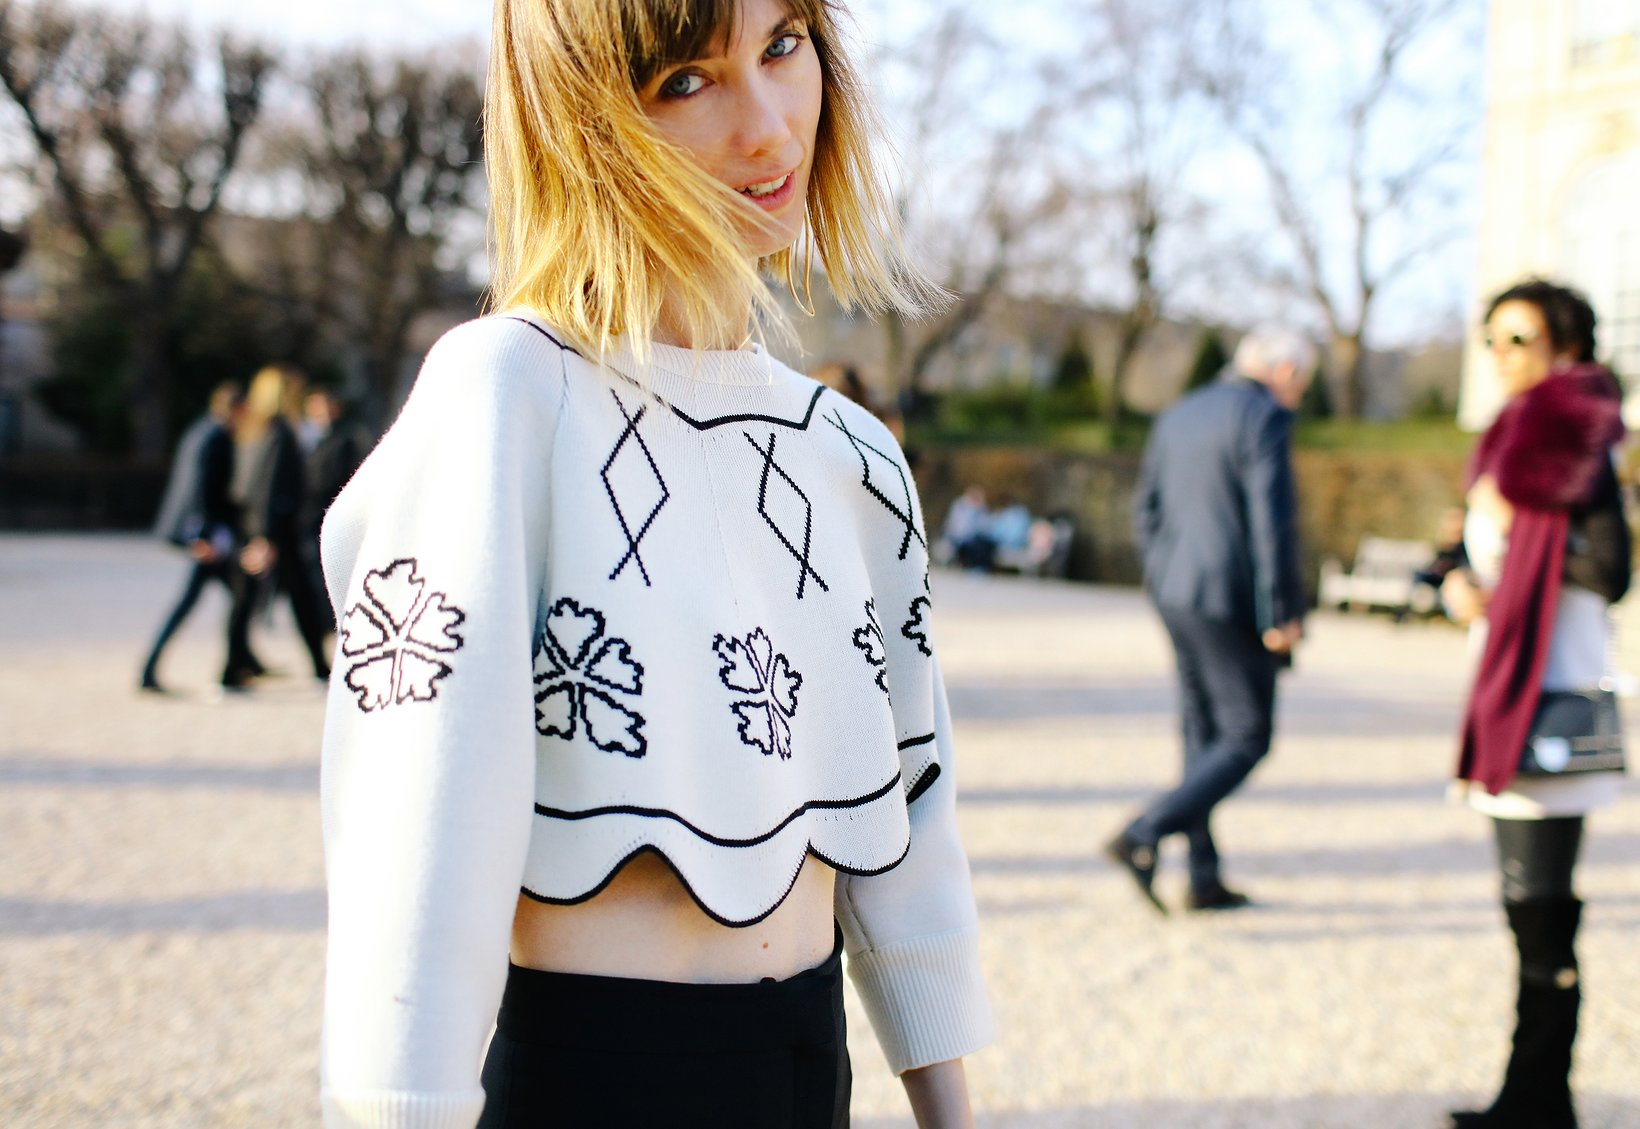 fav-looks-from-paris-fashionwonderer (6)